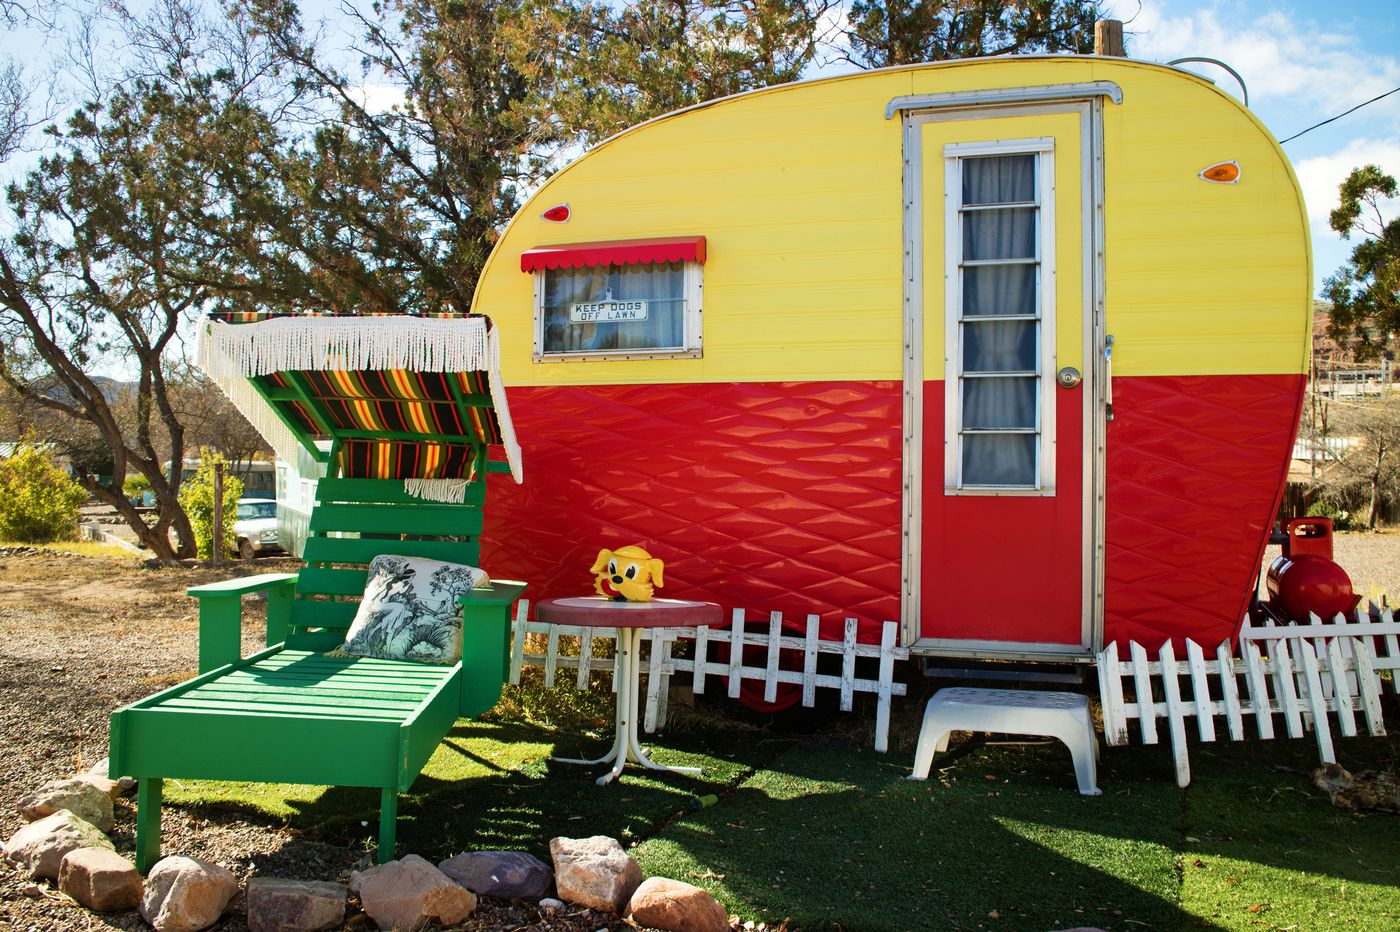 Vintage trailer resorts offer a road trip without a hitch